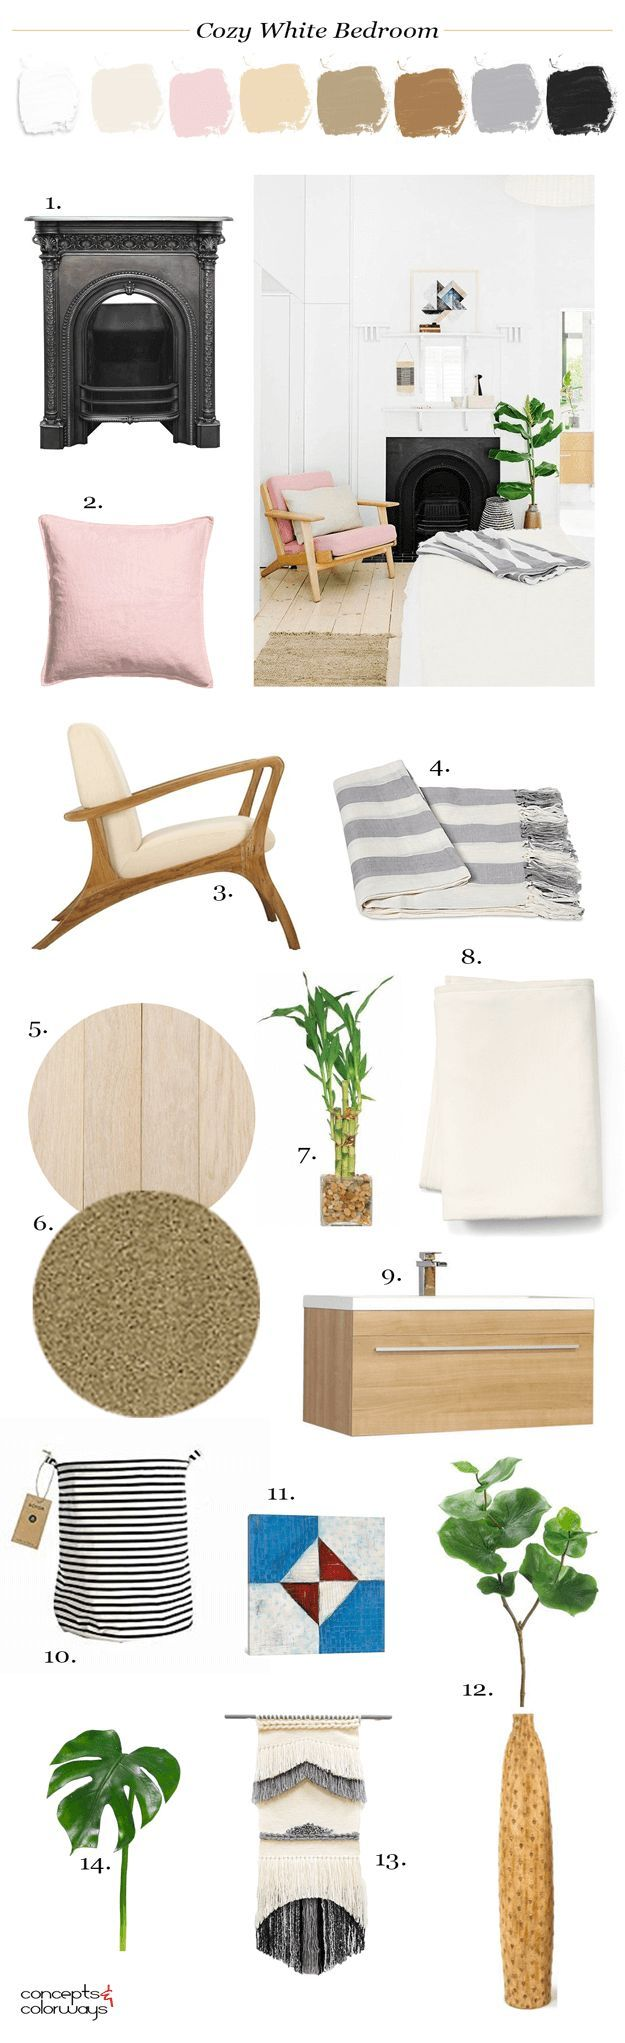 white bedroom interior design mood board, interior styling ideas, interior design inspiration, pantone ballet slipper, pantone neutral gray, sherwin williams tres naturale, natural wood flooring, golden brown rug, mid-century modern chair, blush pink pill